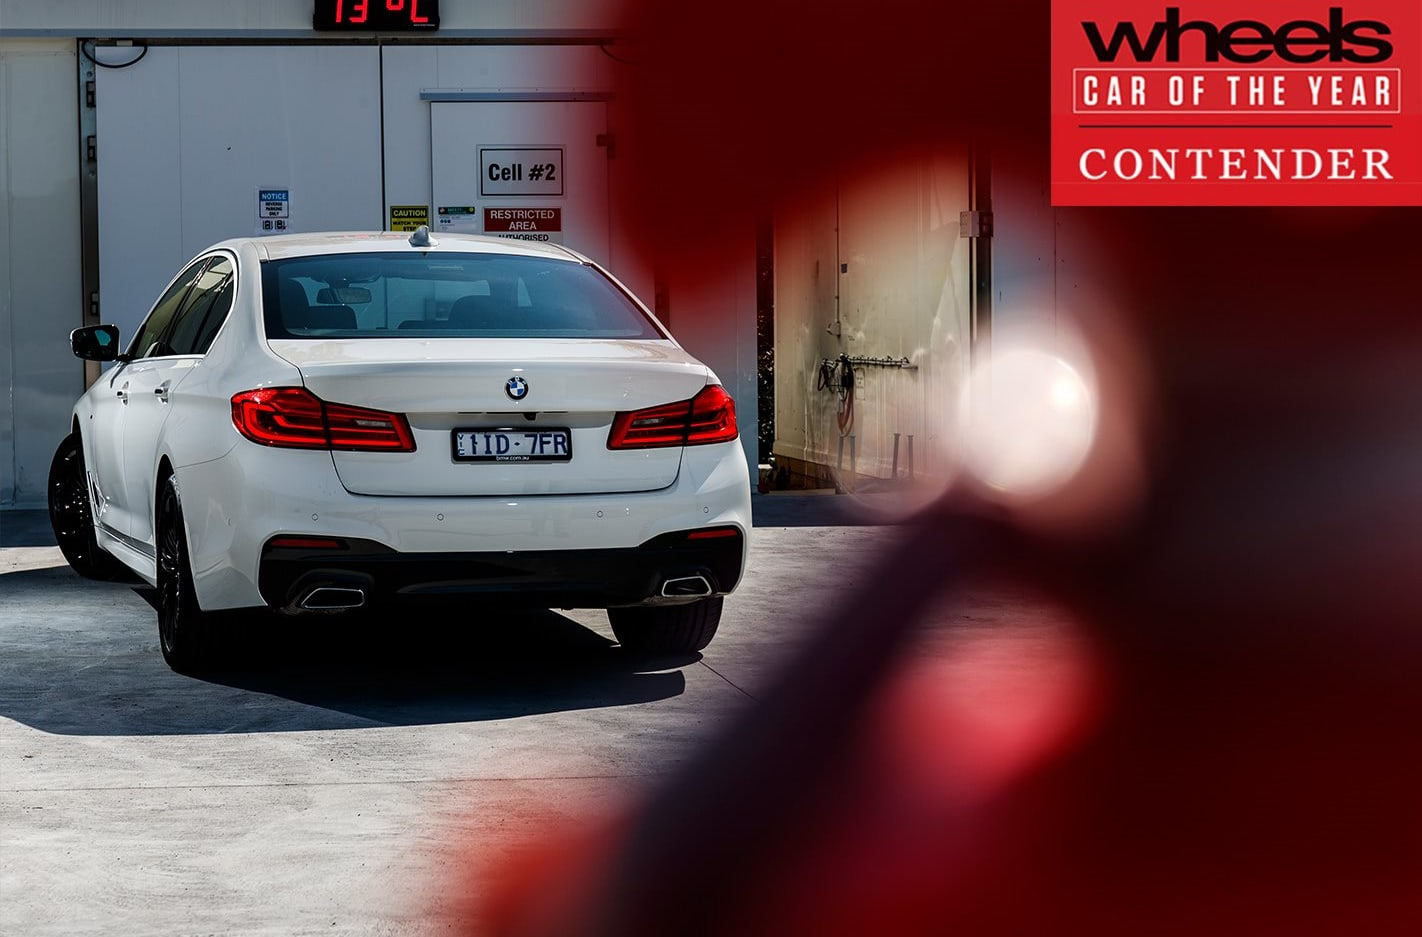 BMW 5 Series 2018 Car of the Year contender